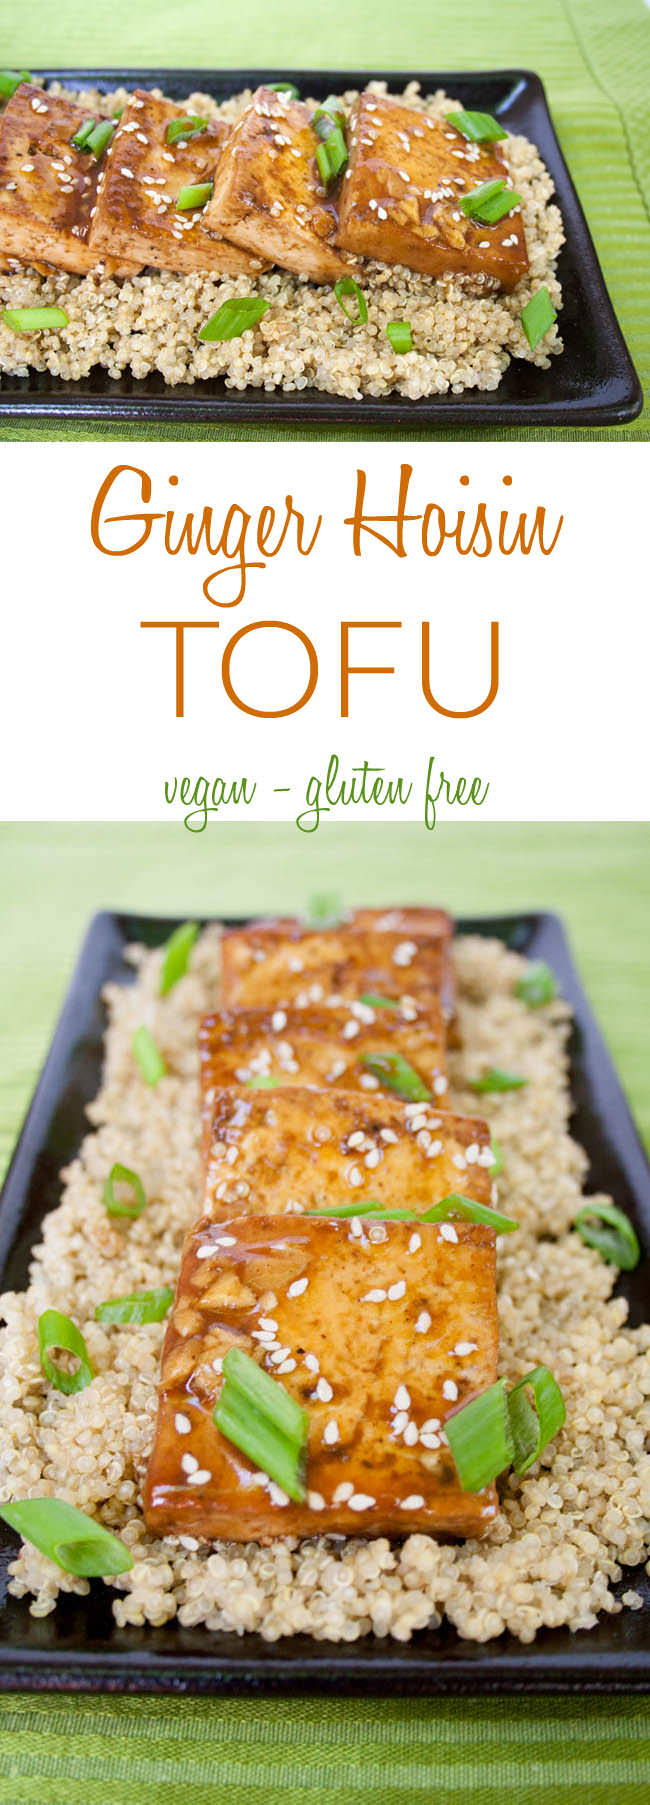 Ginger Hoisin Tofu collage photo with text